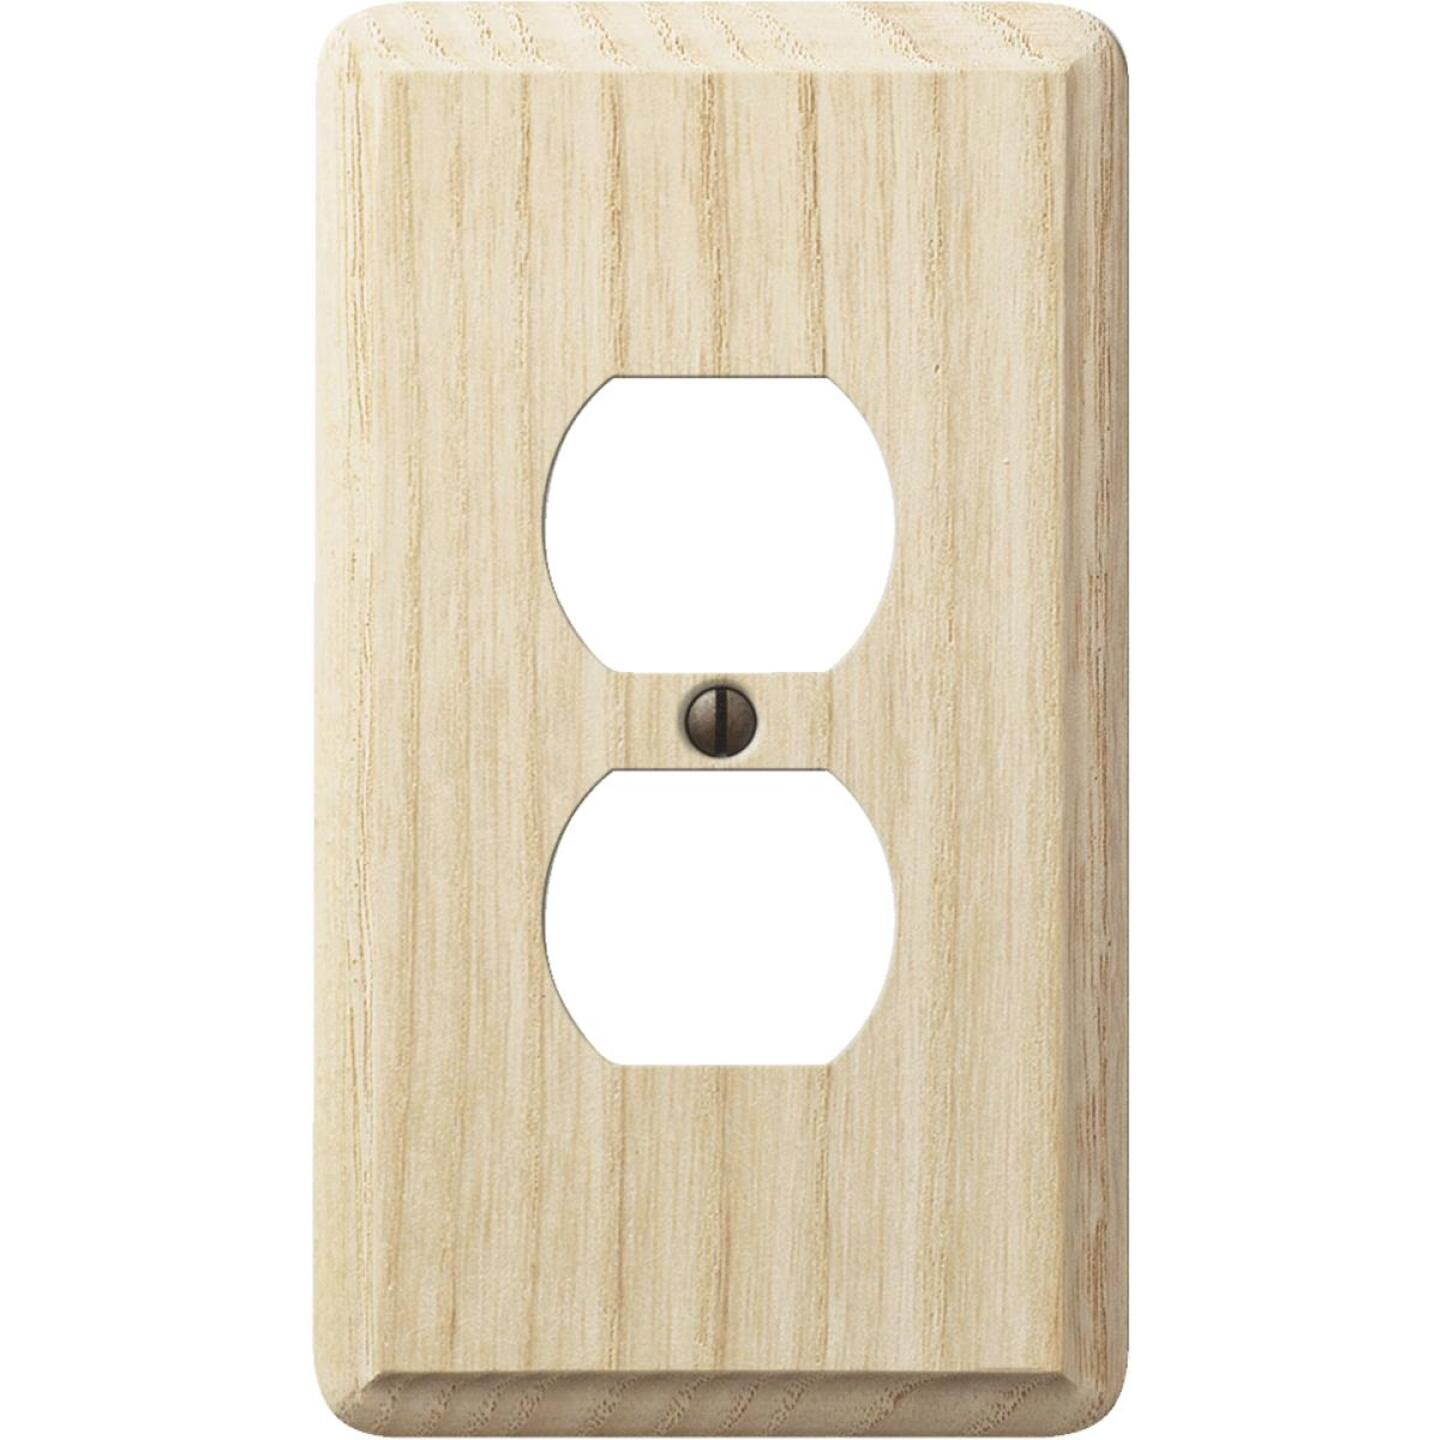 Amerelle 1-Gang Solid Oak Outlet Wall Plate, Unfinished Ash Image 1